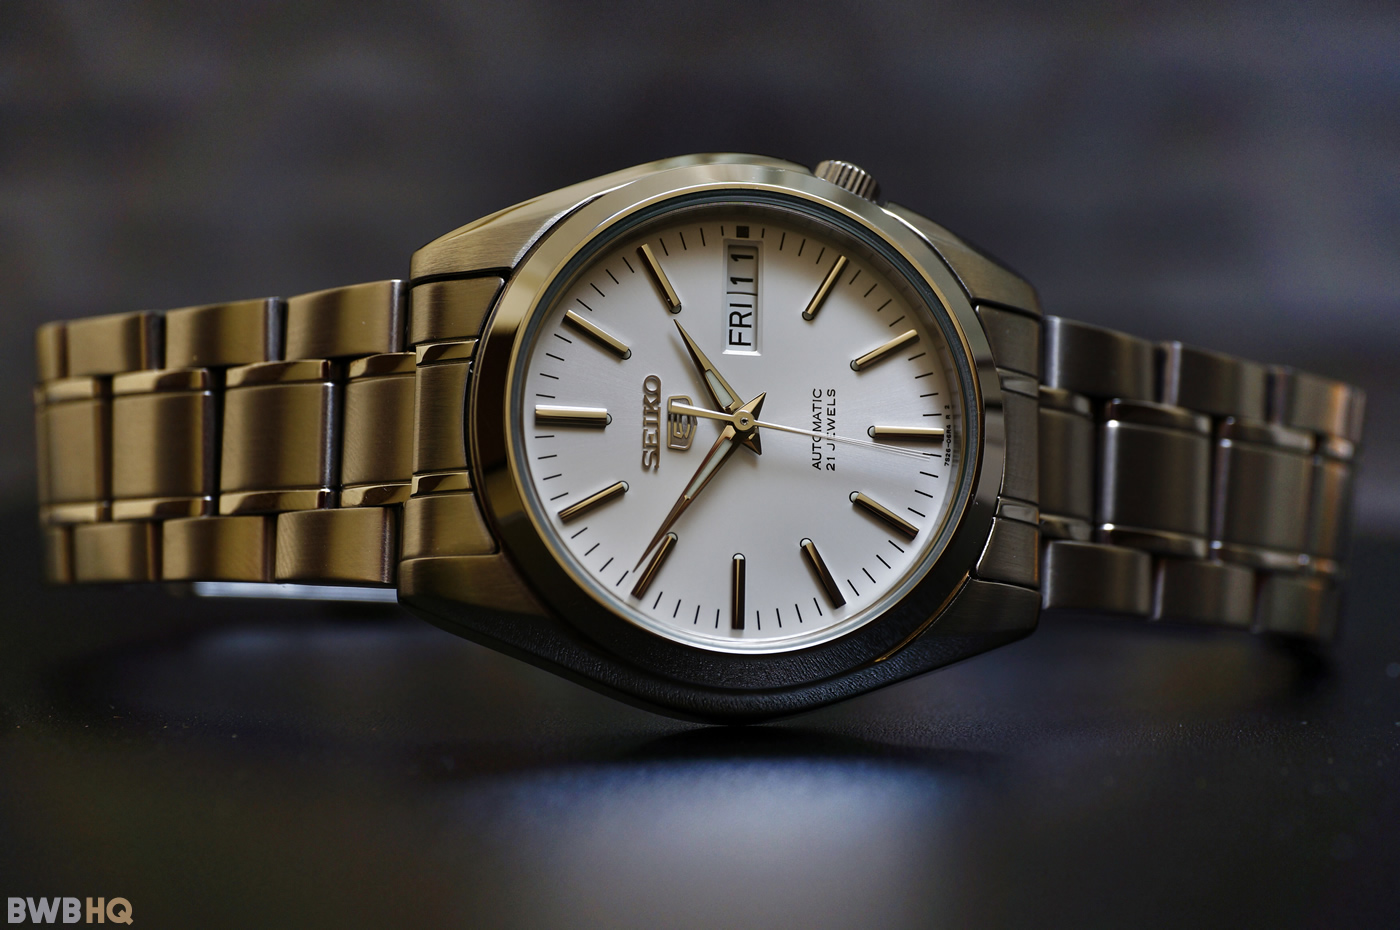 Review Seiko SNKL41 Watch